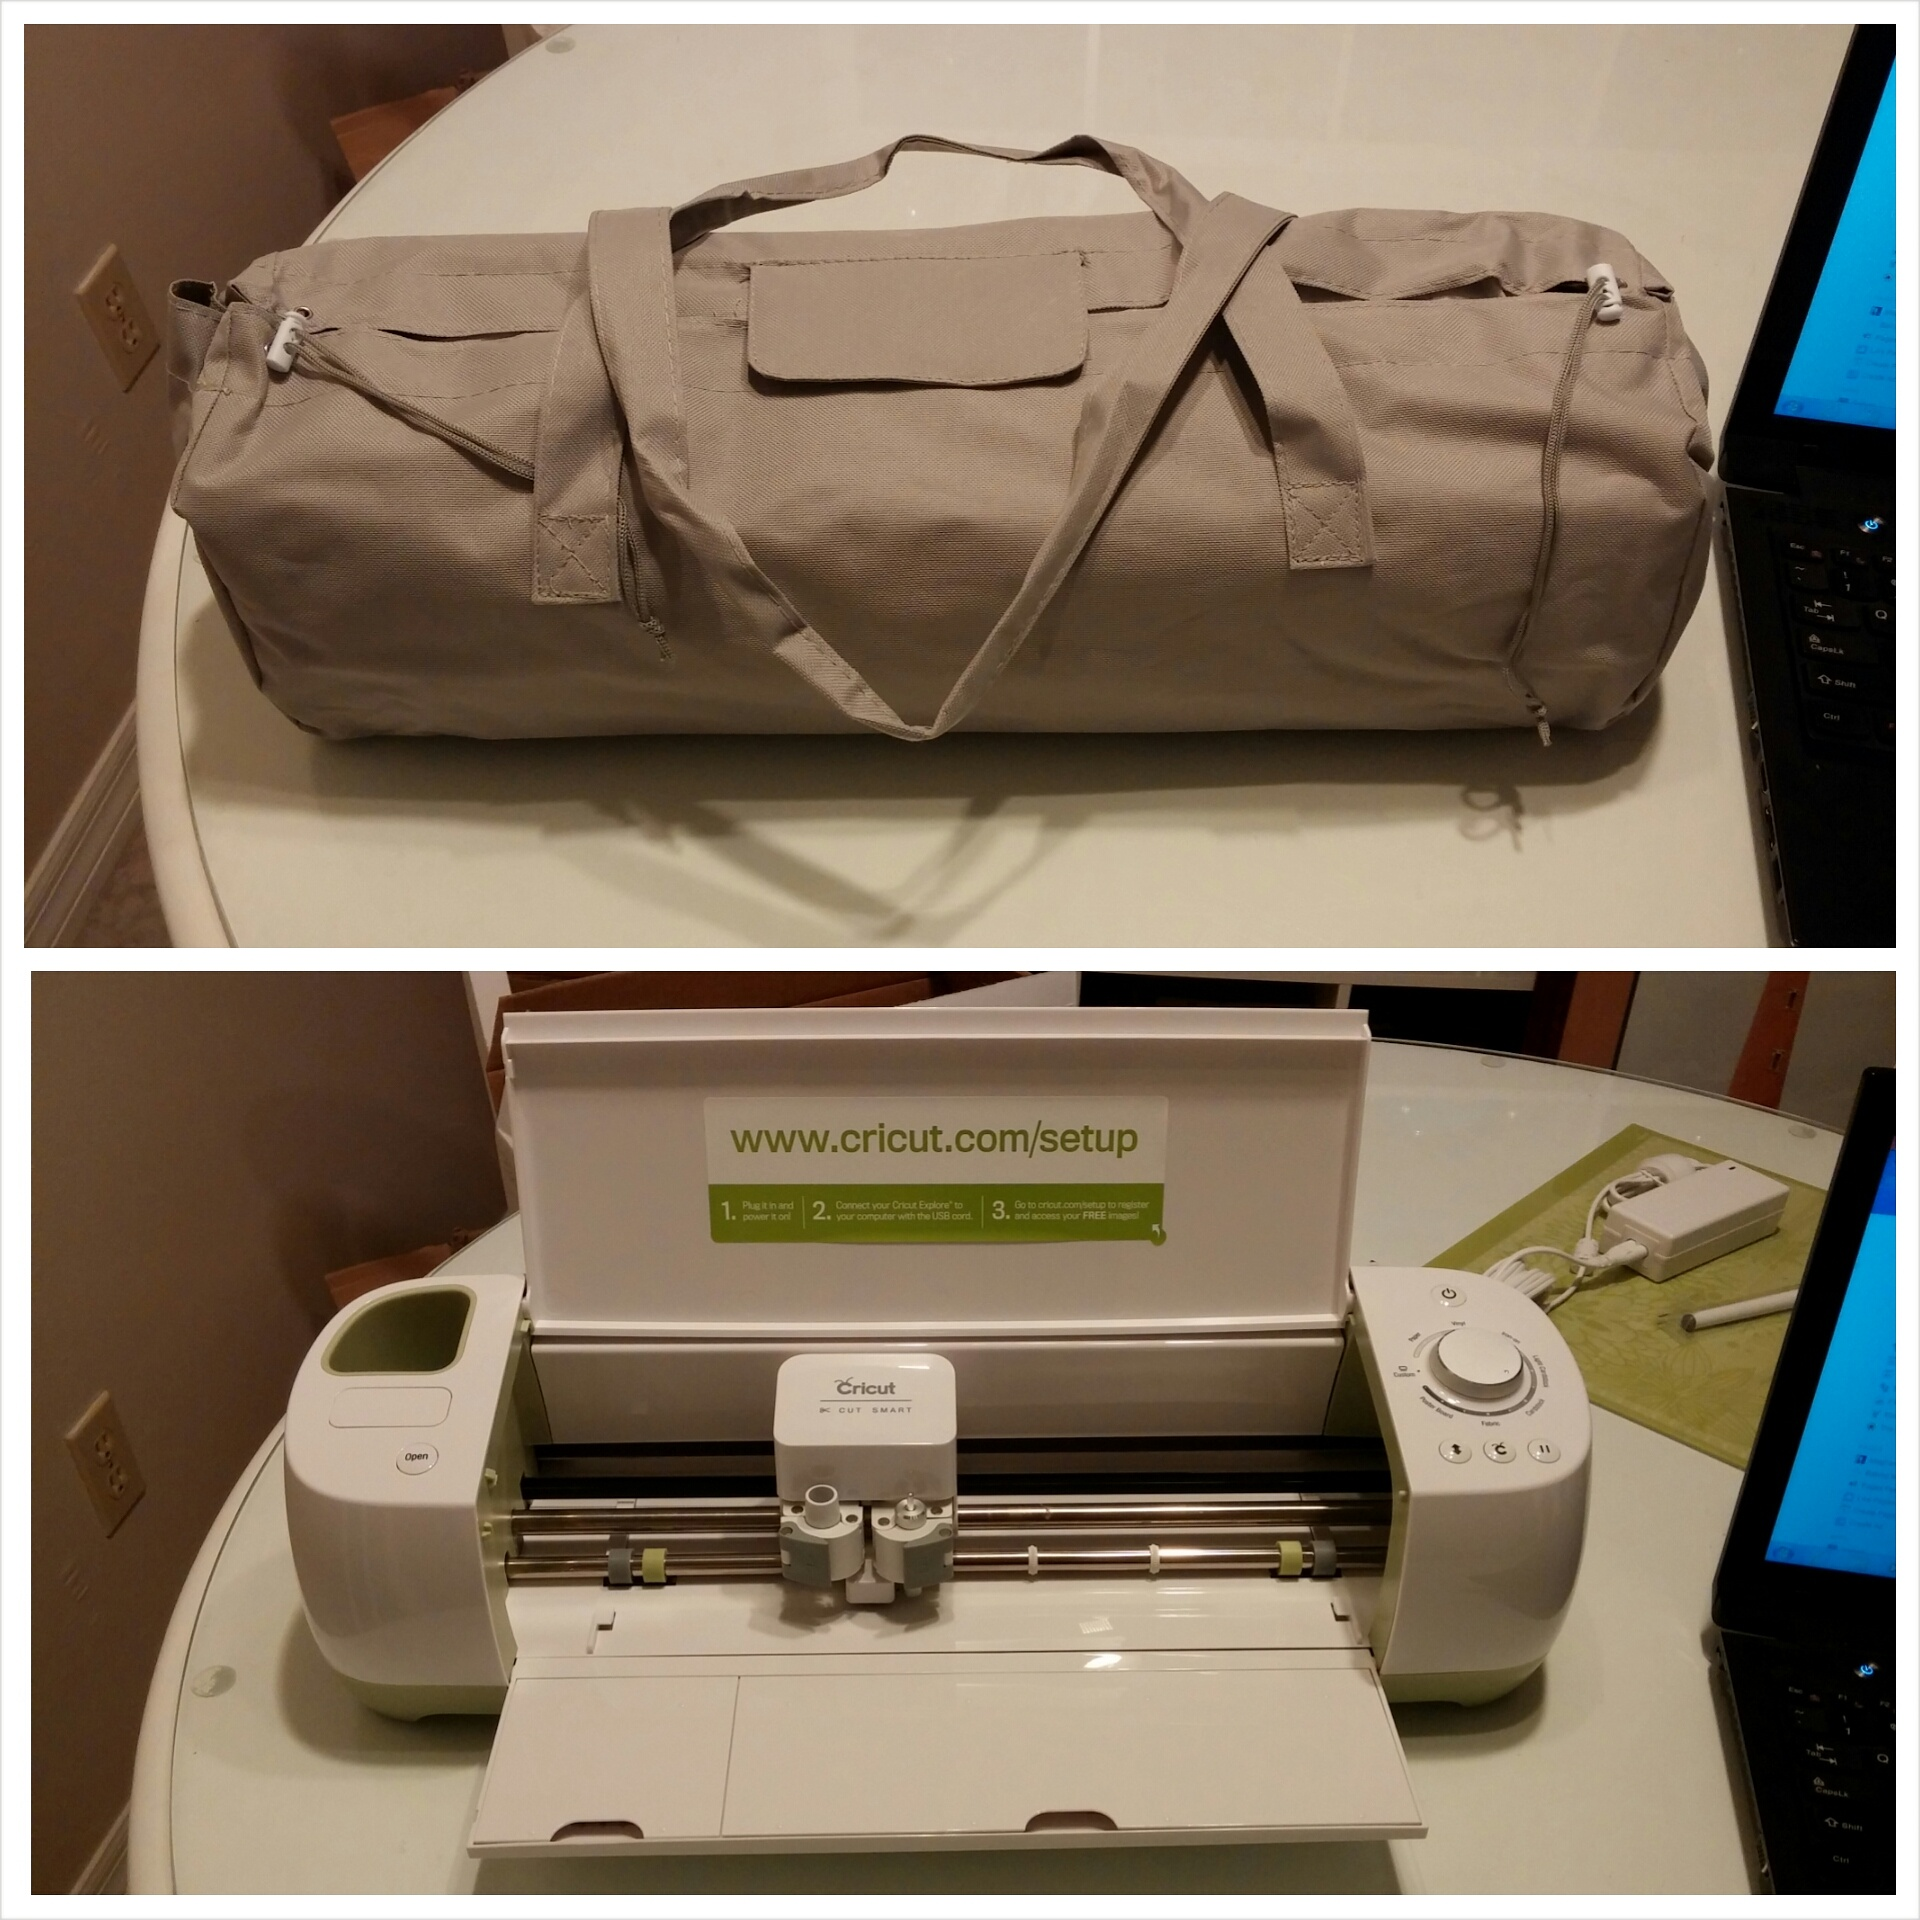 Cricut Creations – My first project! | Meghan on the Move